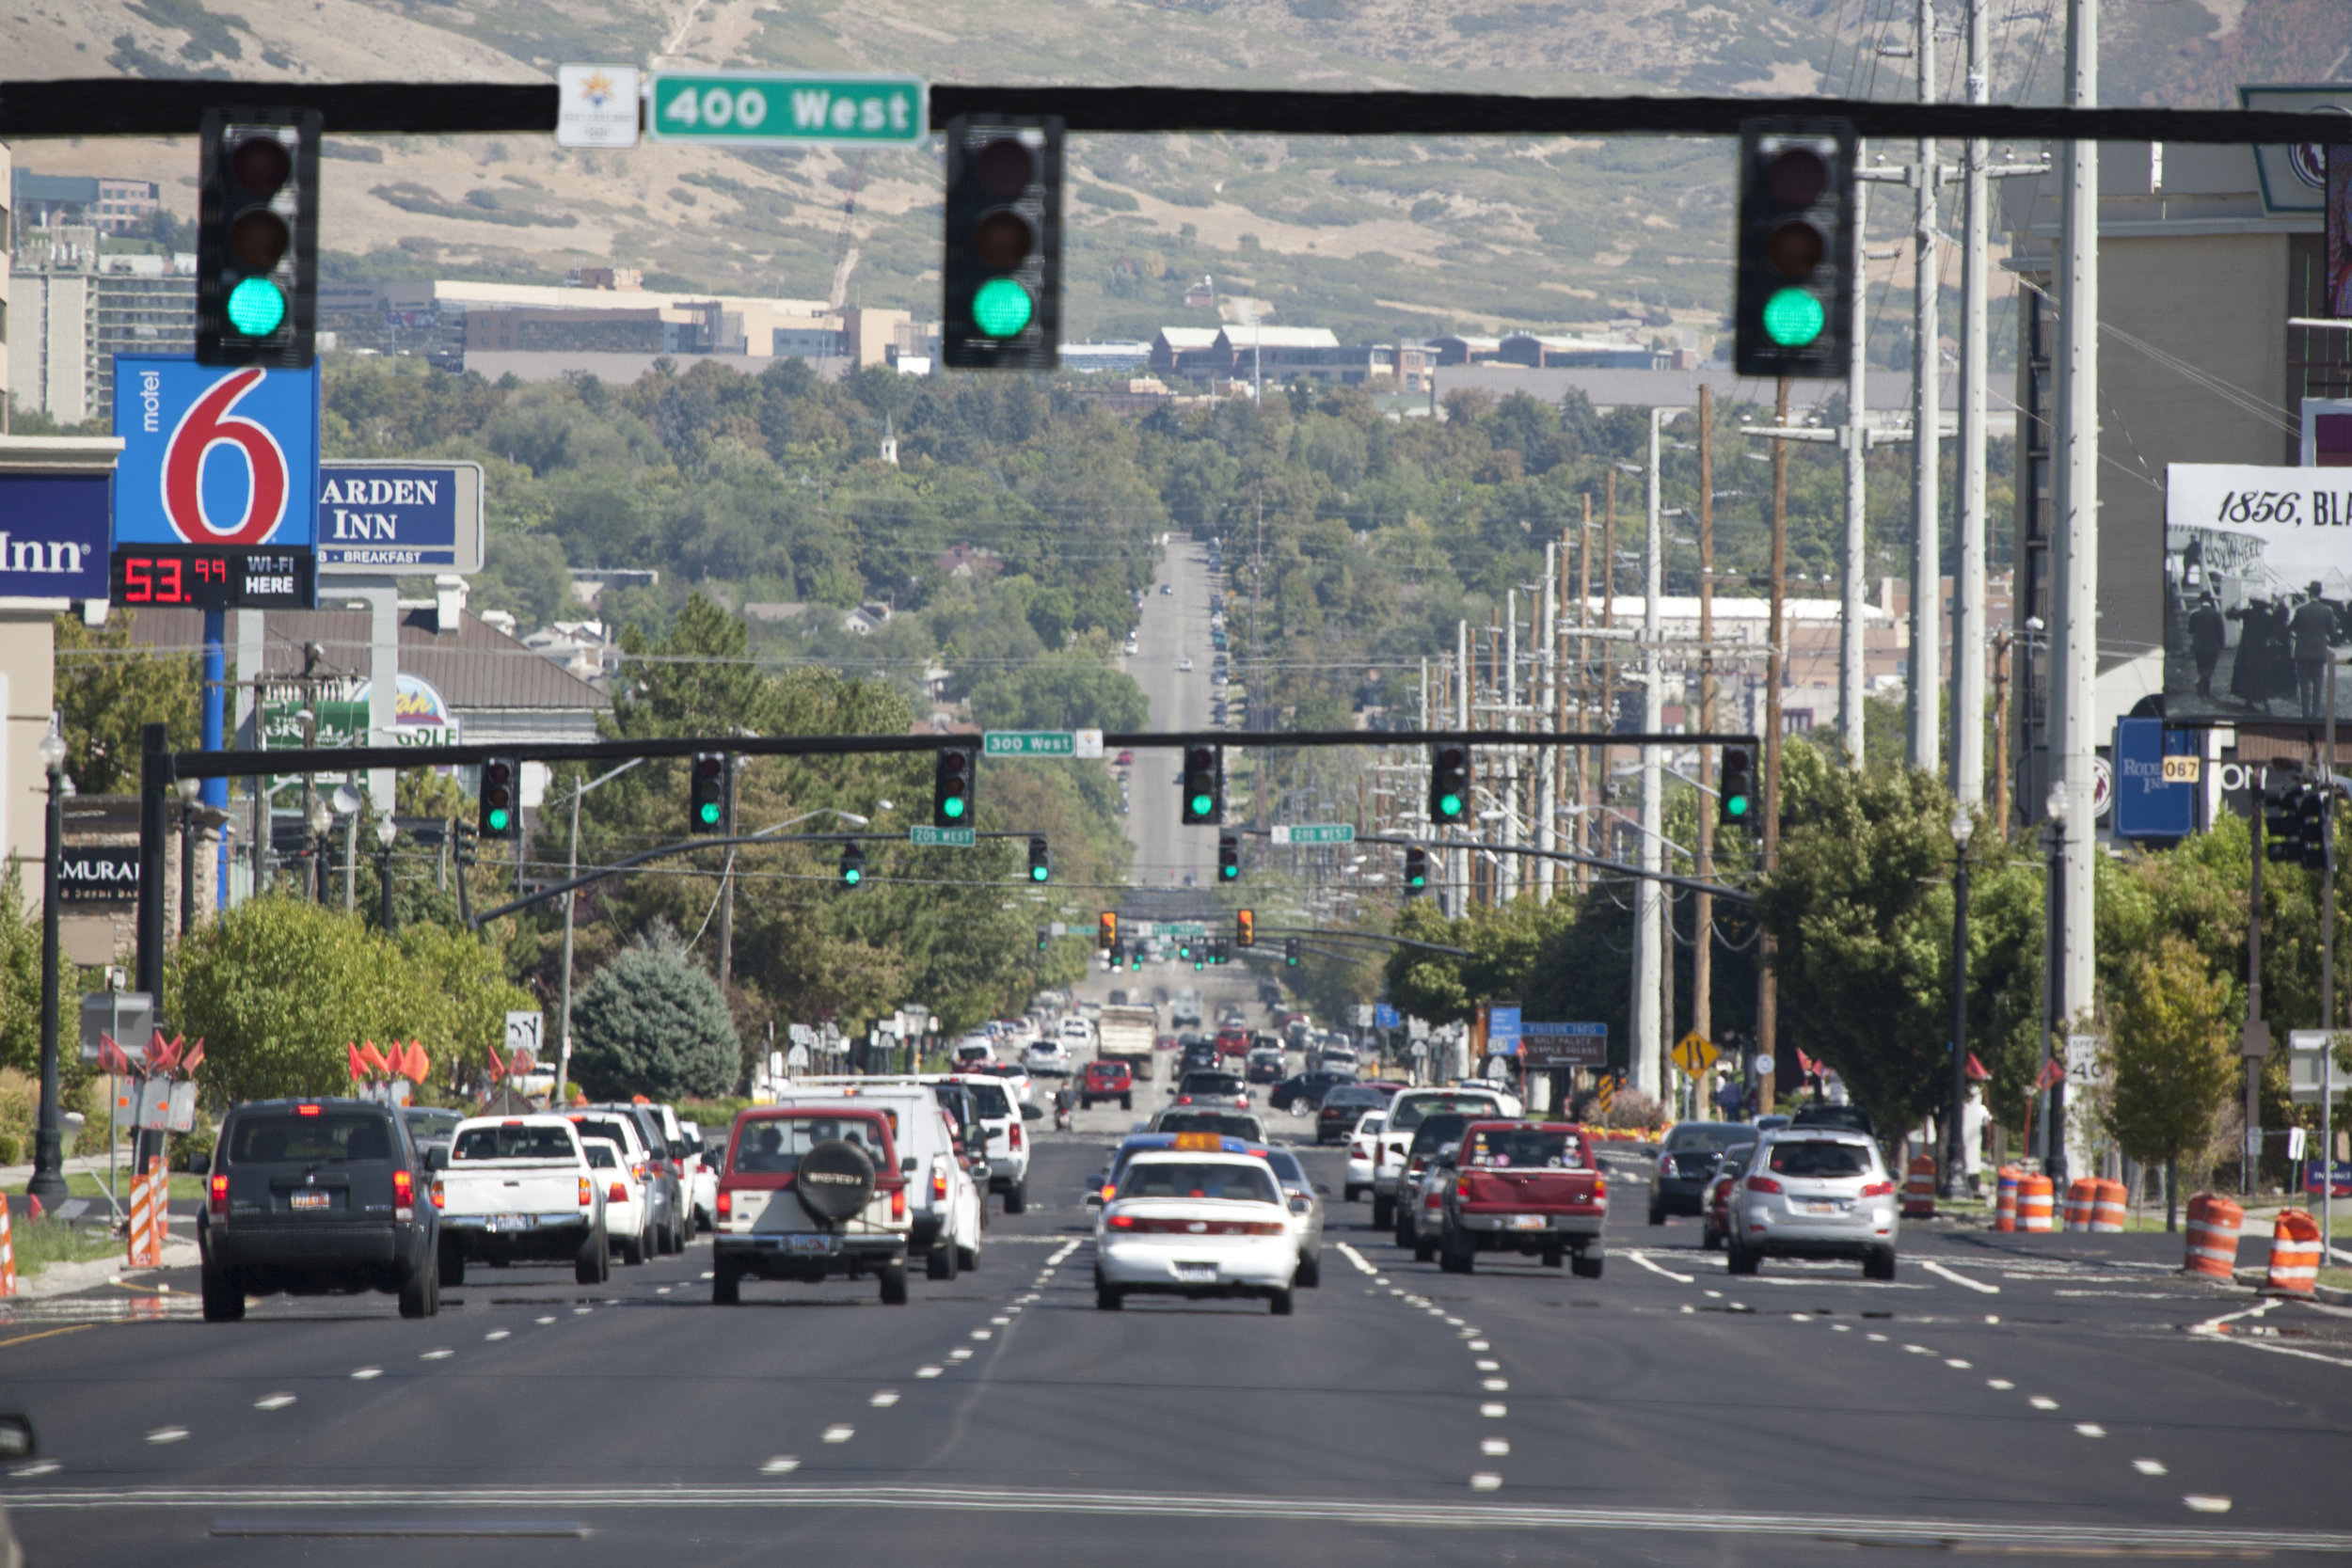 Utah DOT's World Class Traffic Signals Program uses ZincFive's UPStealth Battery Backup System, which fits inside existing traffic cabinets